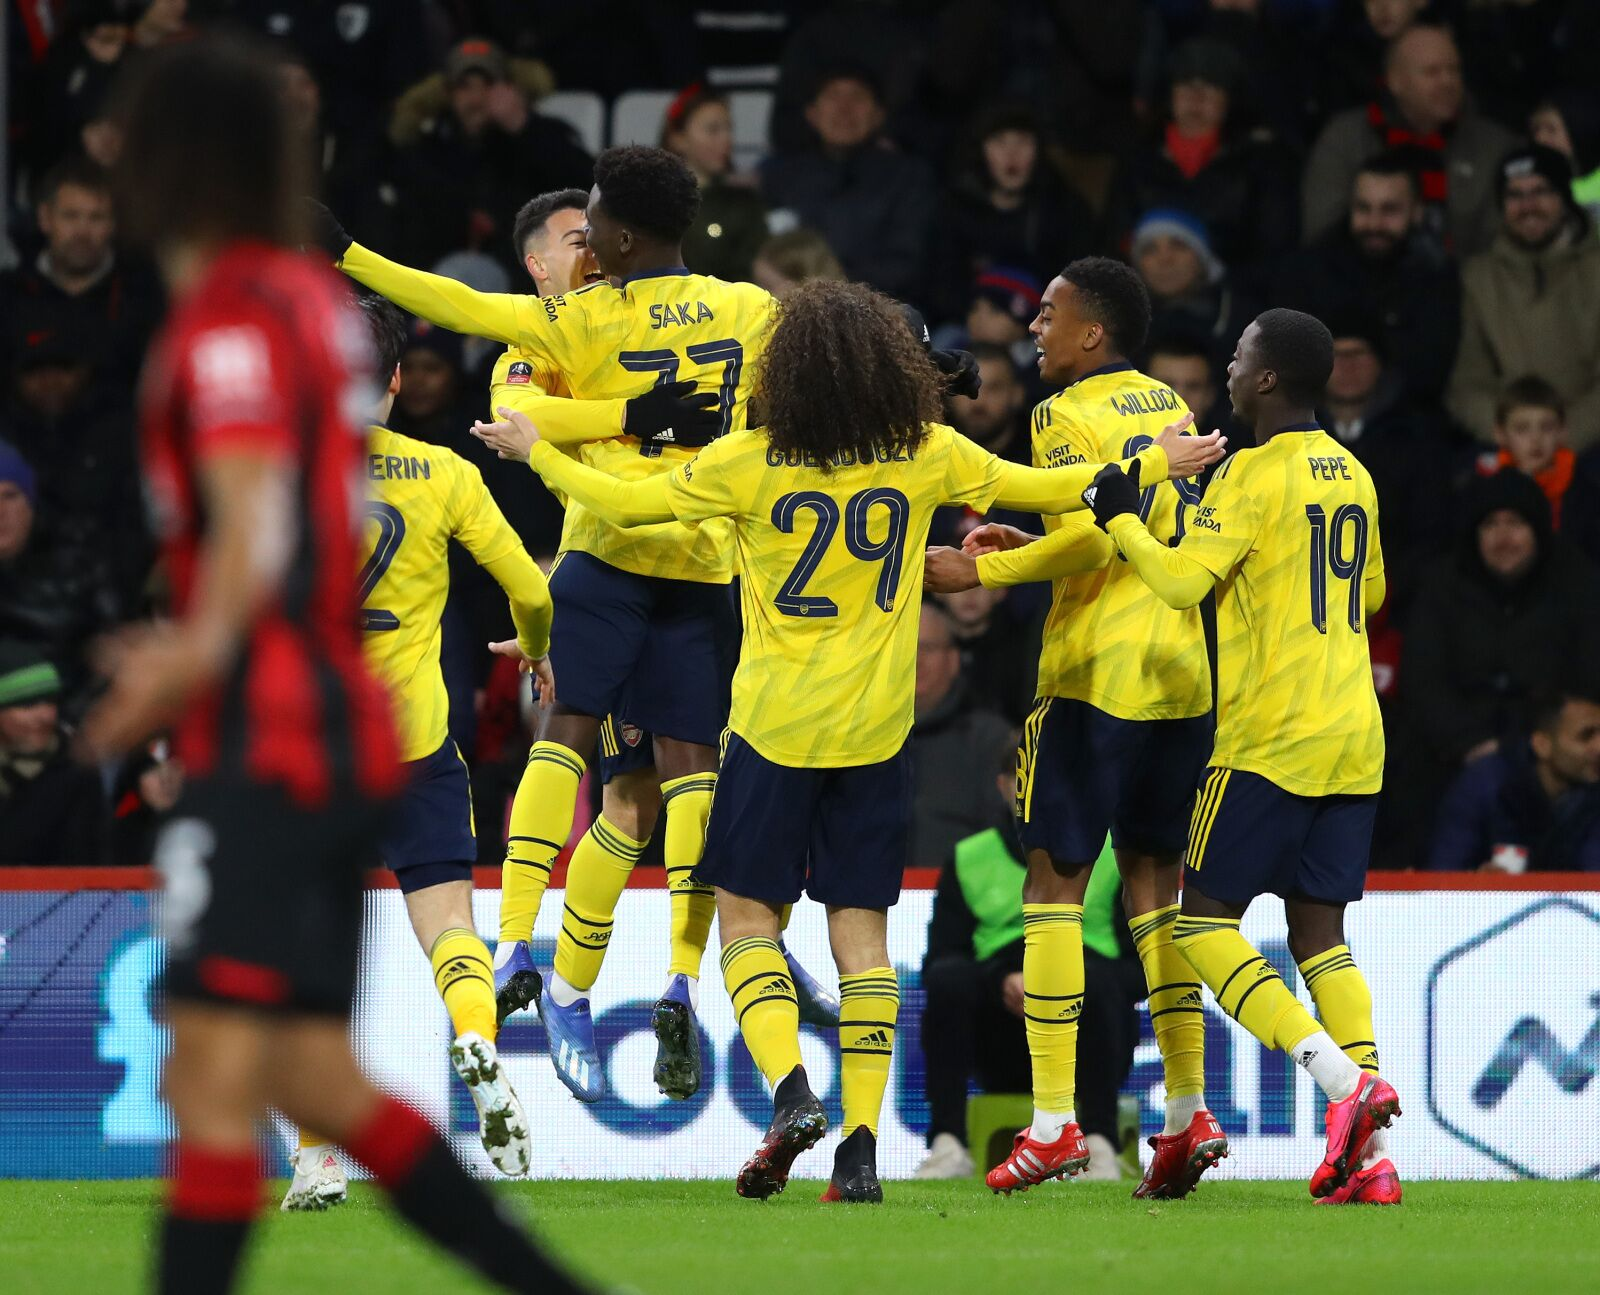 Arsenal: The greatest crop of young players?